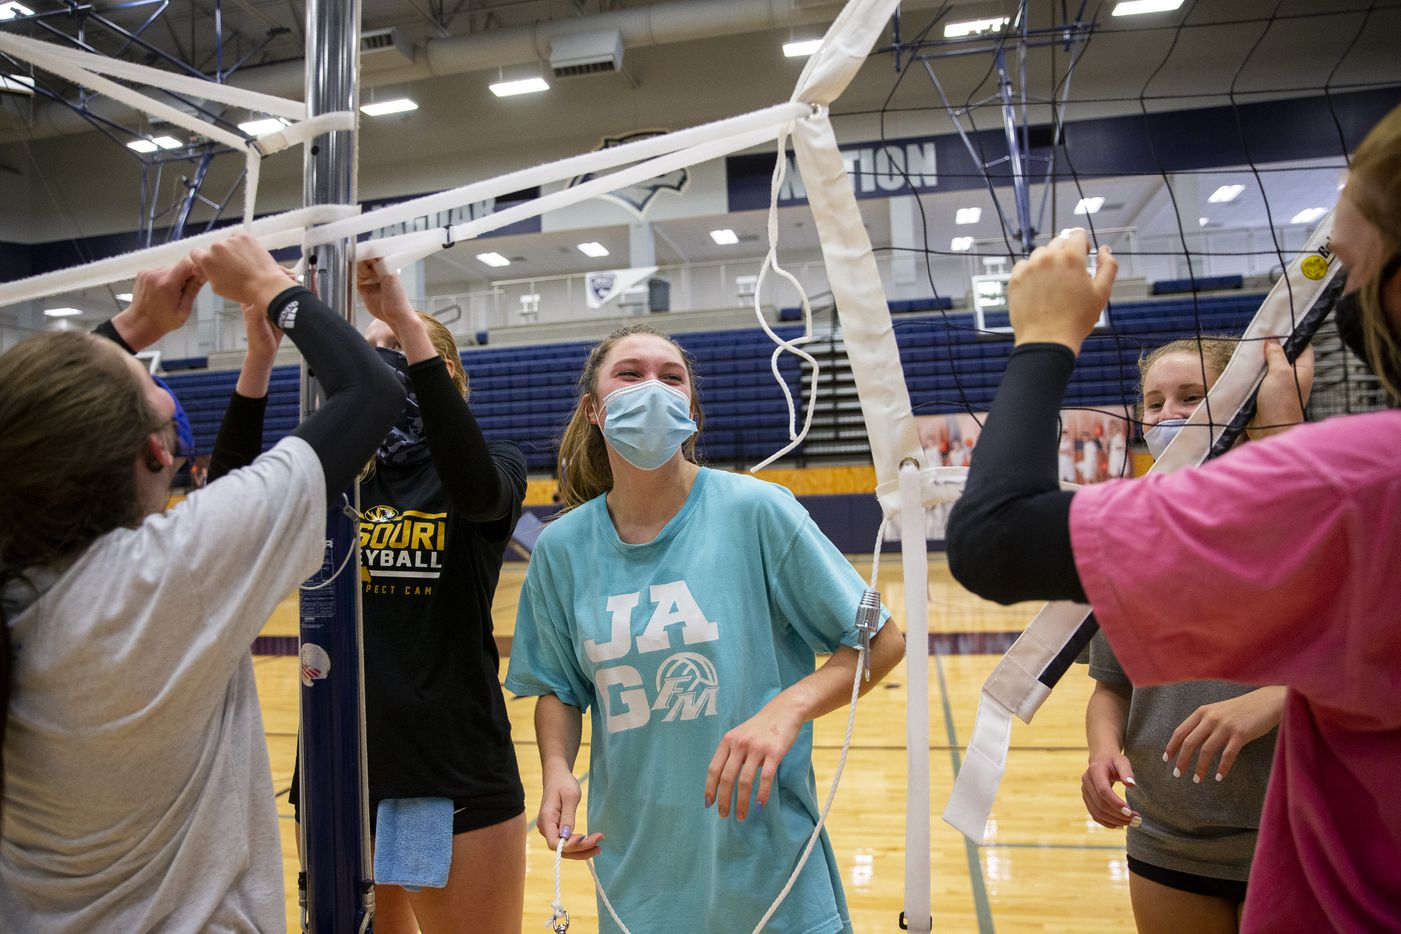 Flower Mound High School volleyball player Caroline Dykes (center) laughs with teammates as they put up the nets after practice on Sept. 8, 2020 in Flower Mound. (Juan Figueroa/ The Dallas Morning News)